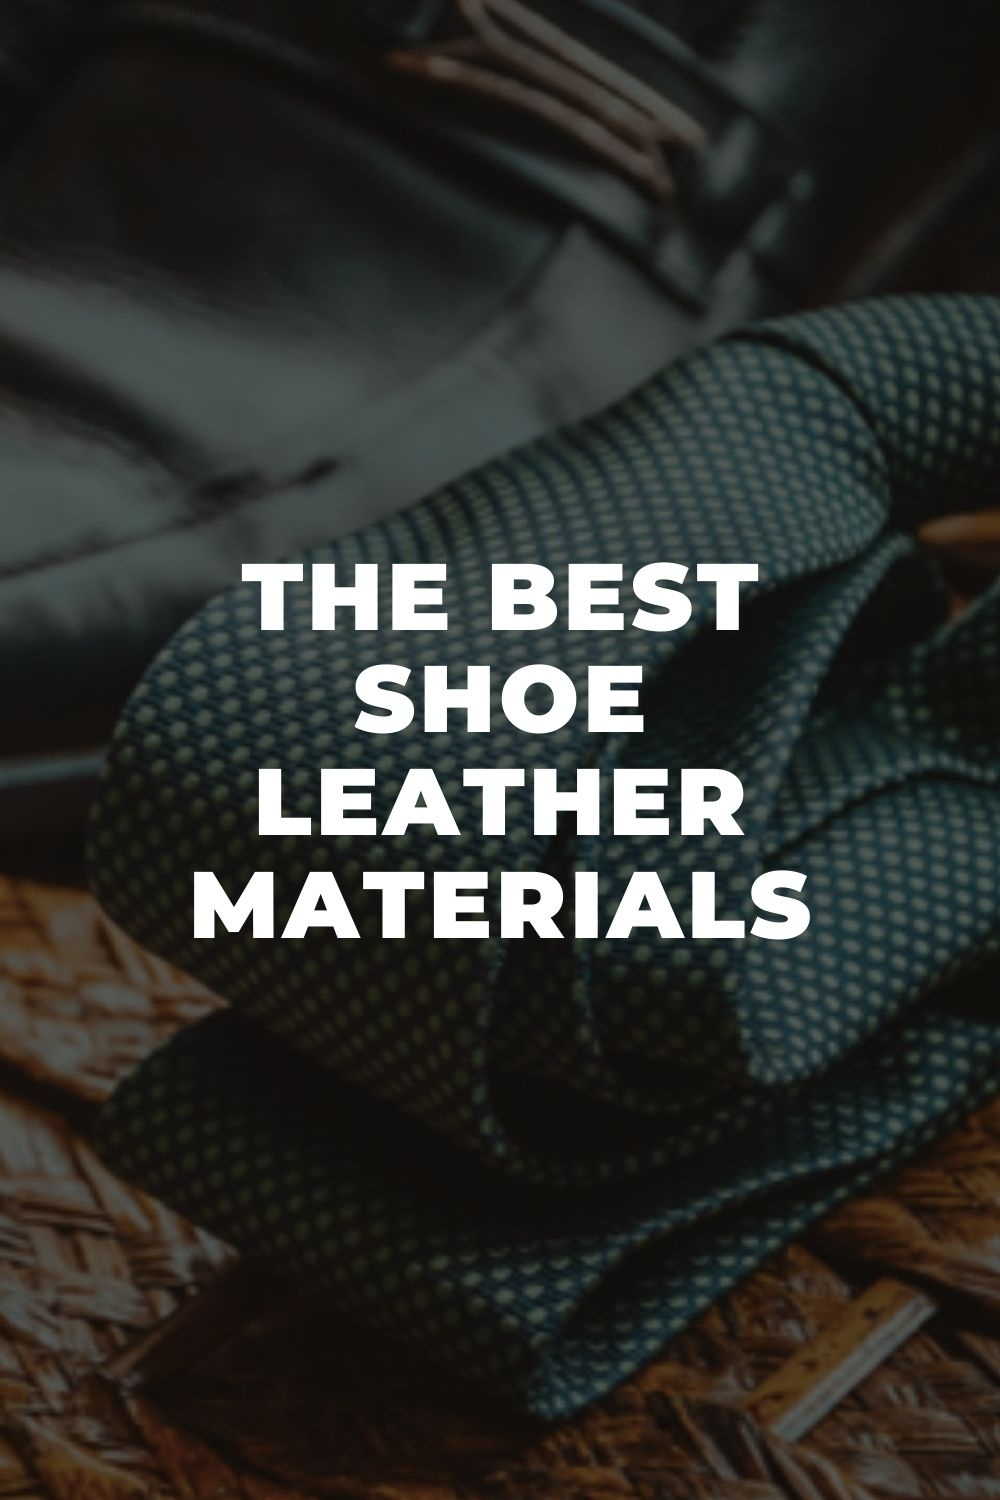 The Best Shoe Leather Materials